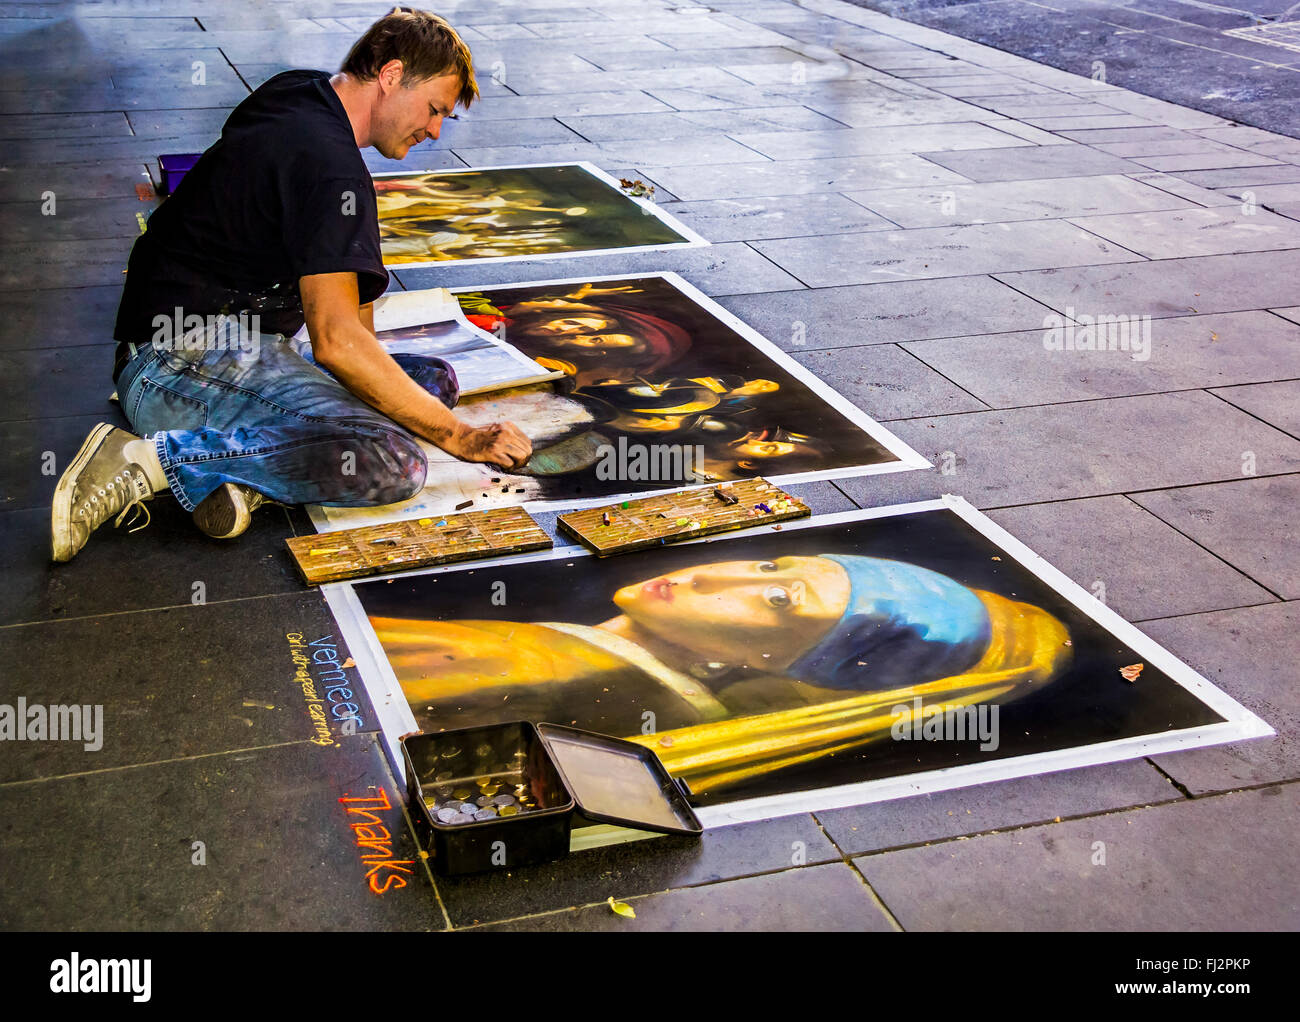 Street Art Pastel Colour Drawings Copy Of Old Masters Artists Stock